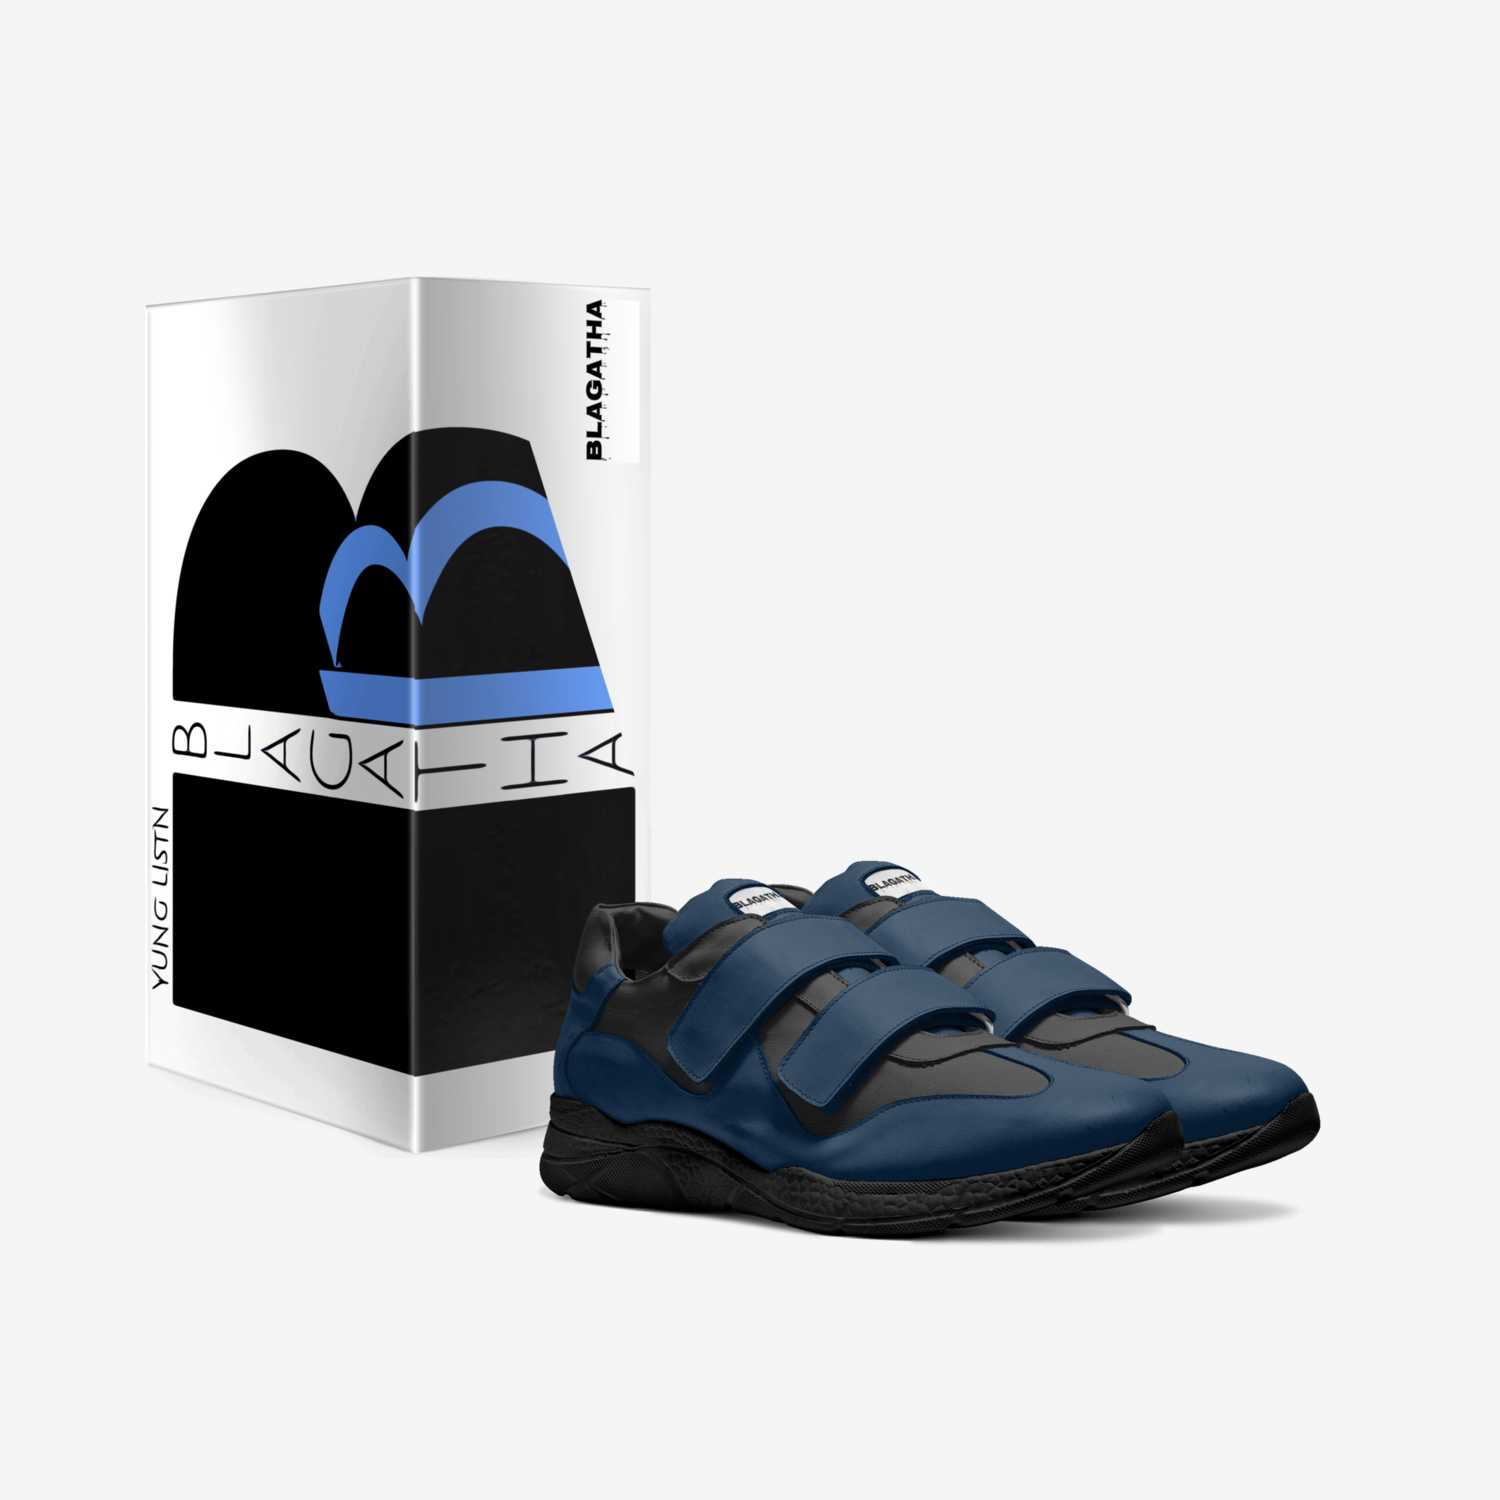 BLAGATHA 2020 custom made in Italy shoes by Yung Listn | Box view